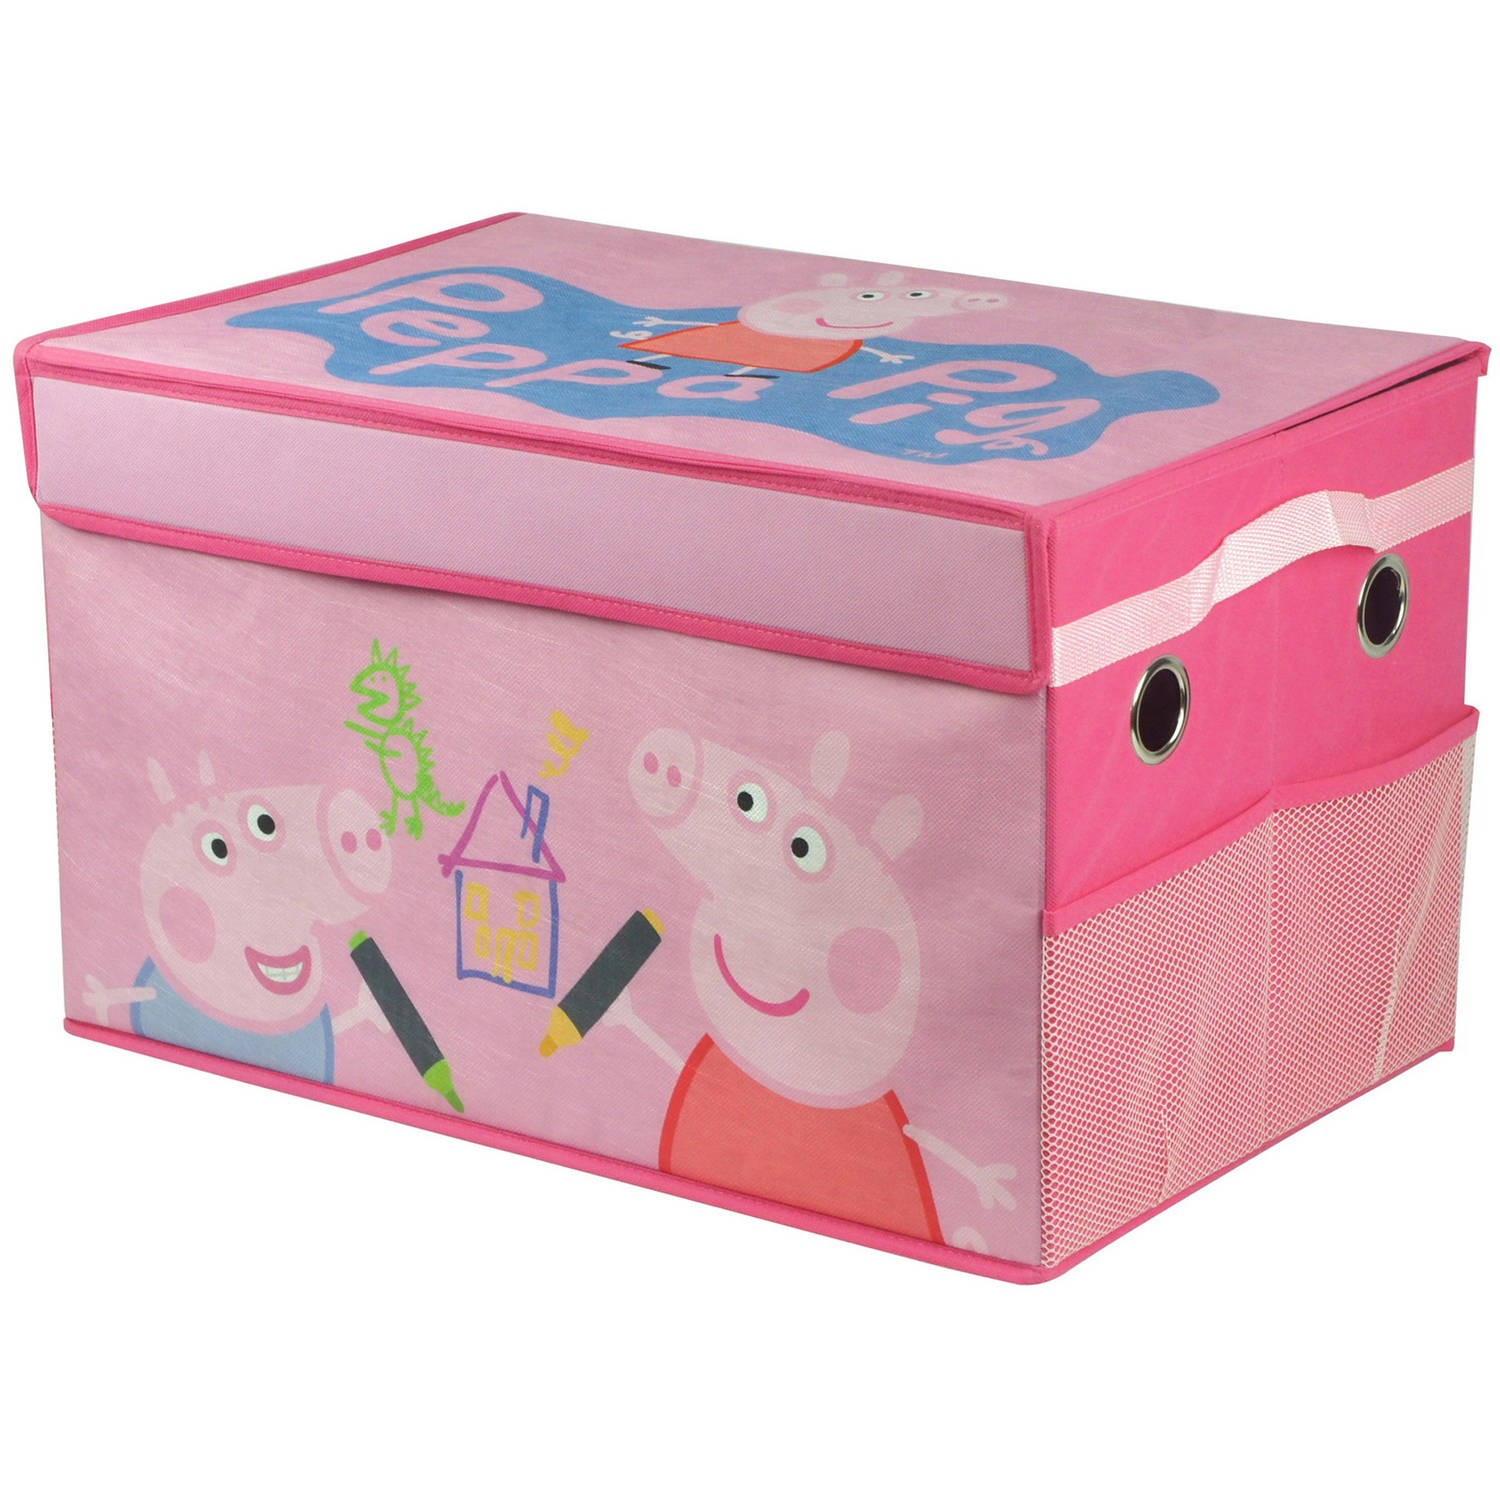 Beau Peppa Pig Collapsible Toy Storage Trunk